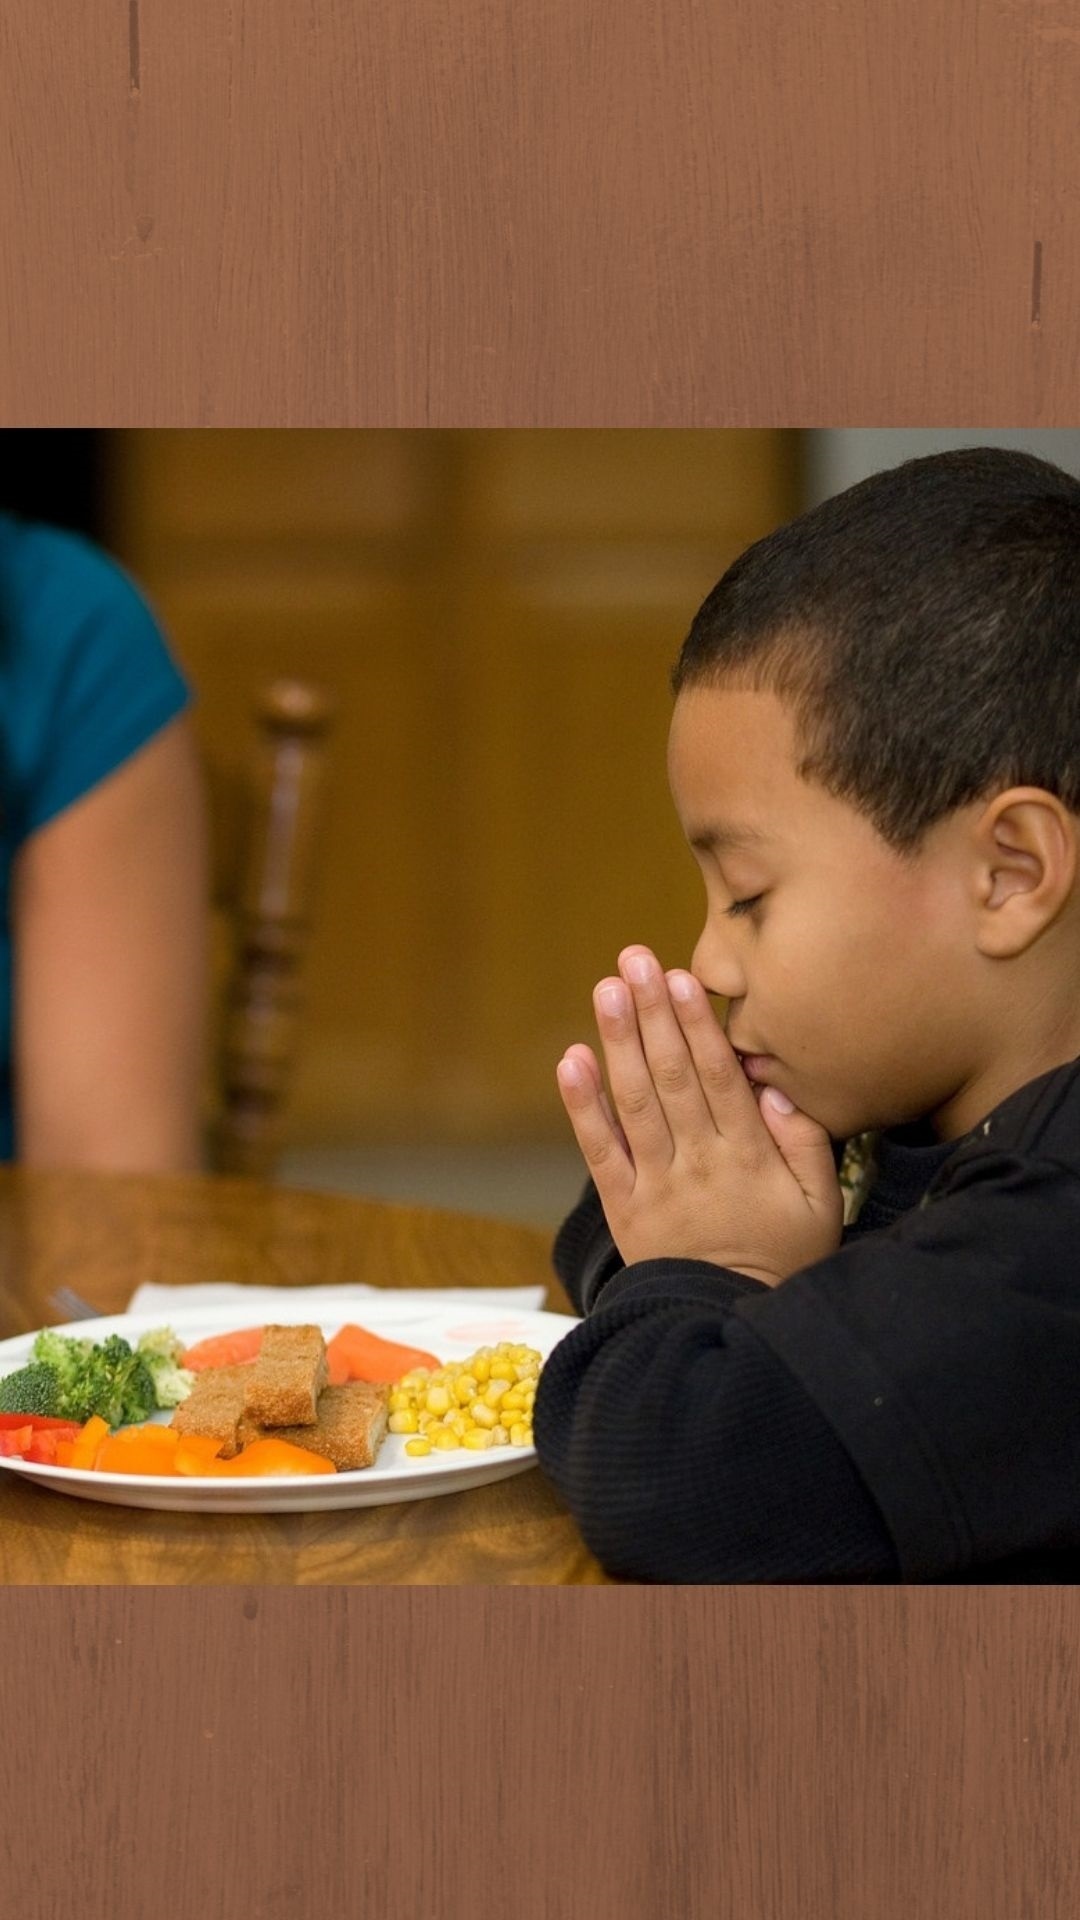 Geoffrey Booker, 6, prays before mealtime at his home in Brentwood, Tenn. Photo by Mike DuBose, UMNS [Adaption for UMC.org homepage hero]